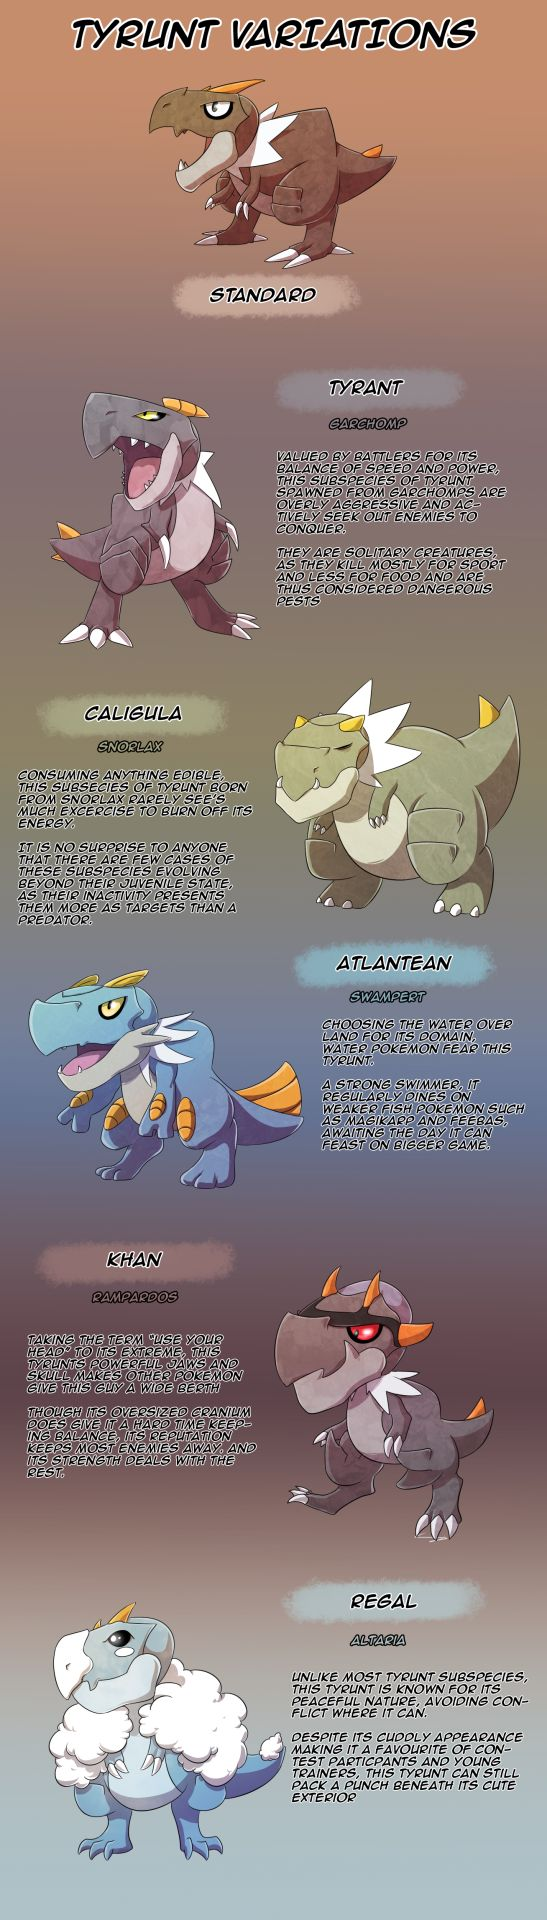 Felt like jumping on that bandwagon everyone is riding on using one of my favourite pokemon(Don't know how to scale images on Tumblr so I linked the image here to my one on dA)http://mad-revolution.deviantart.com/art/Tyrunt-Subspecies-chart-530412347